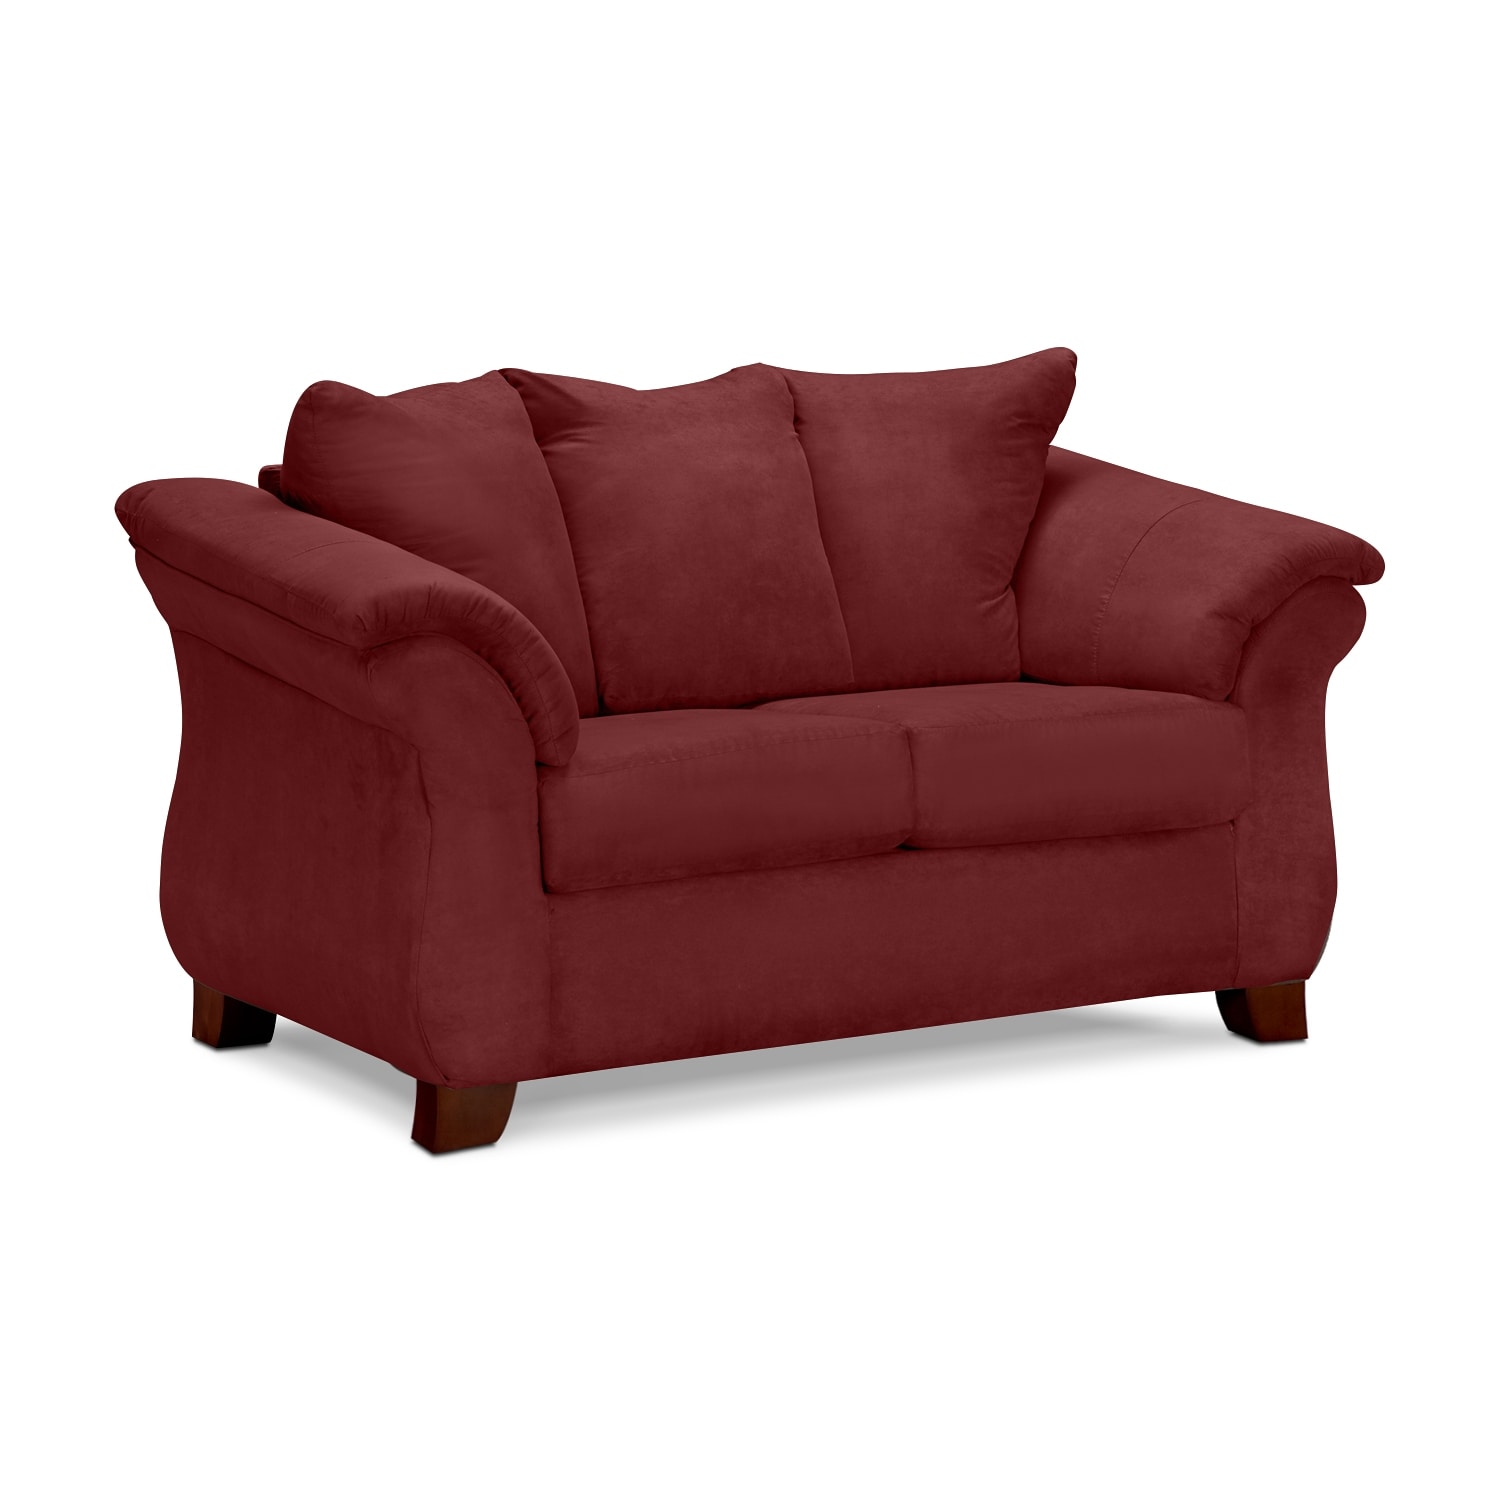 Adrian Loveseat - Red